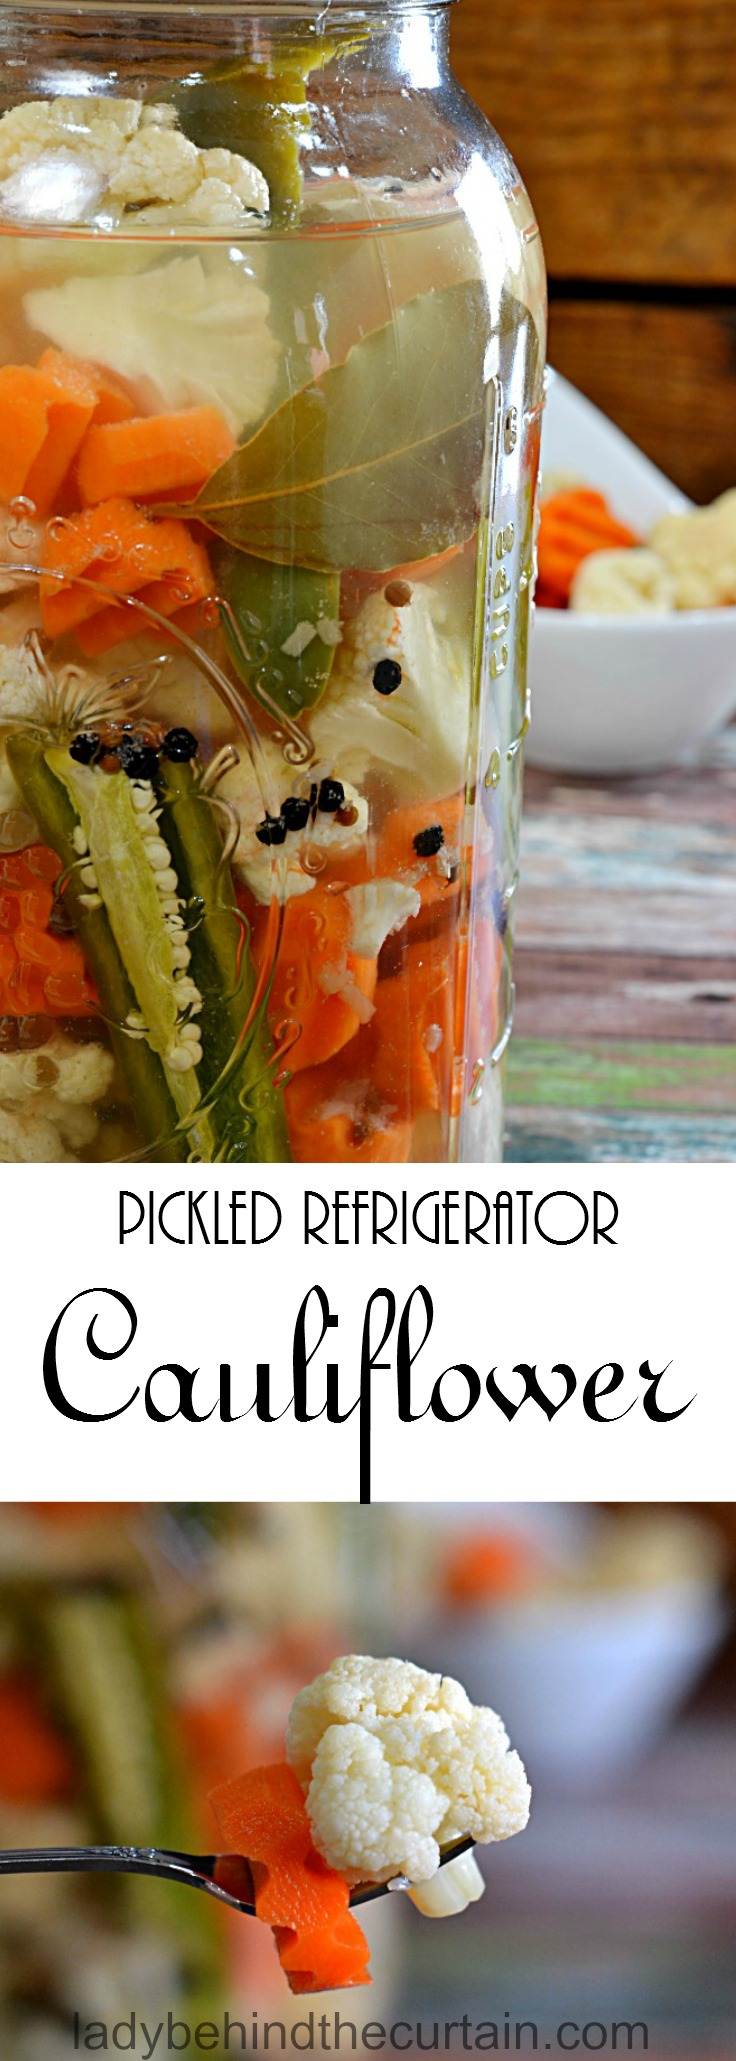 Cauliflower - whether to Pickle for the Winter Recipe for Pickled Cauliflower 54